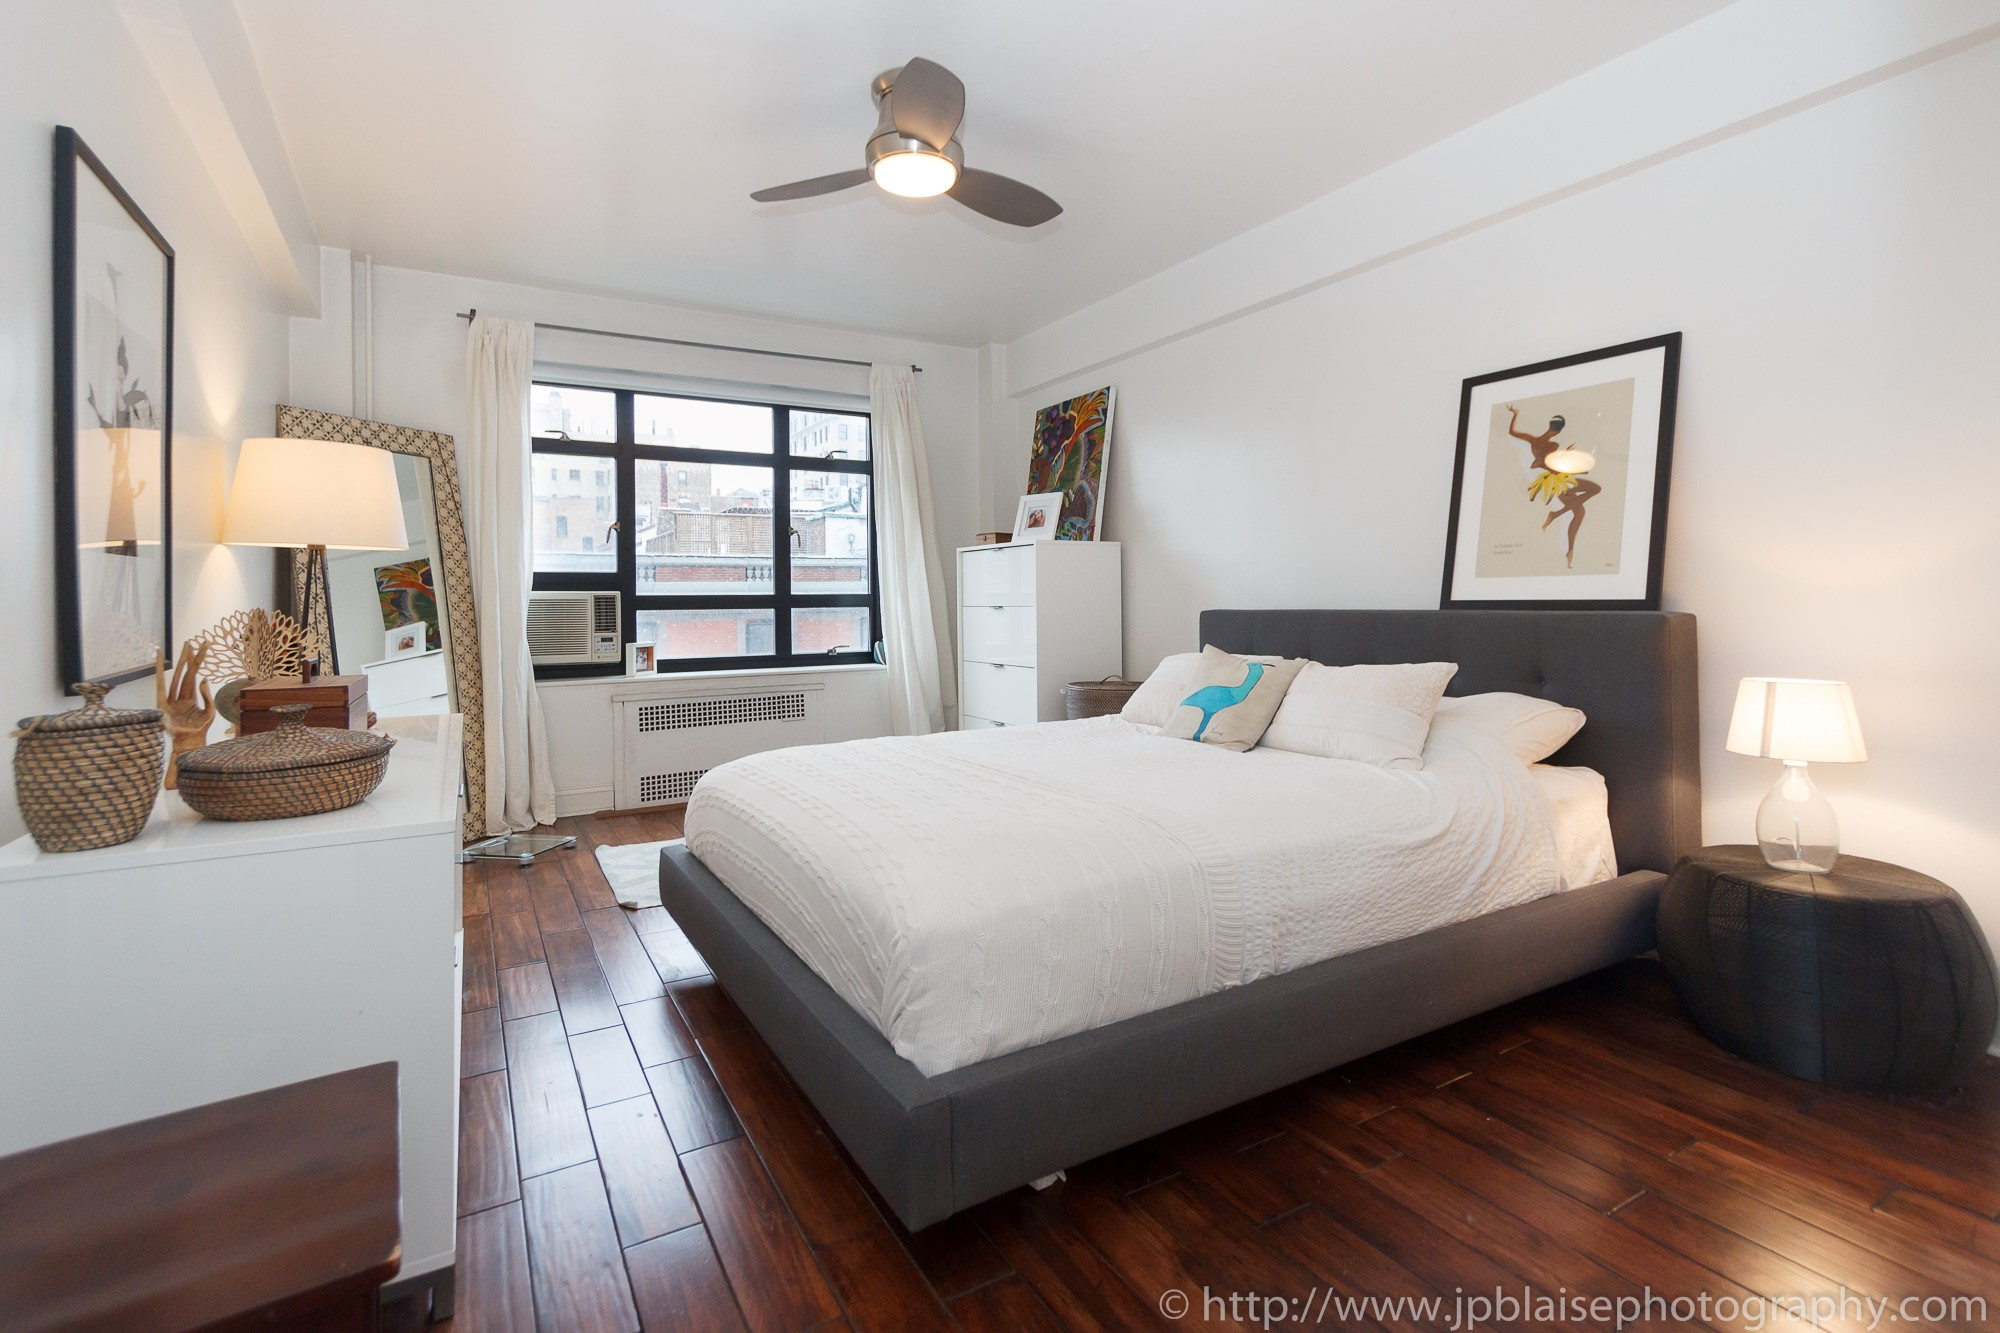 New York City Apartment Photographer work of the day  One bedroom unit in  Brooklyn Heights. New York City Apartment Photographer work of the day  One bedroom